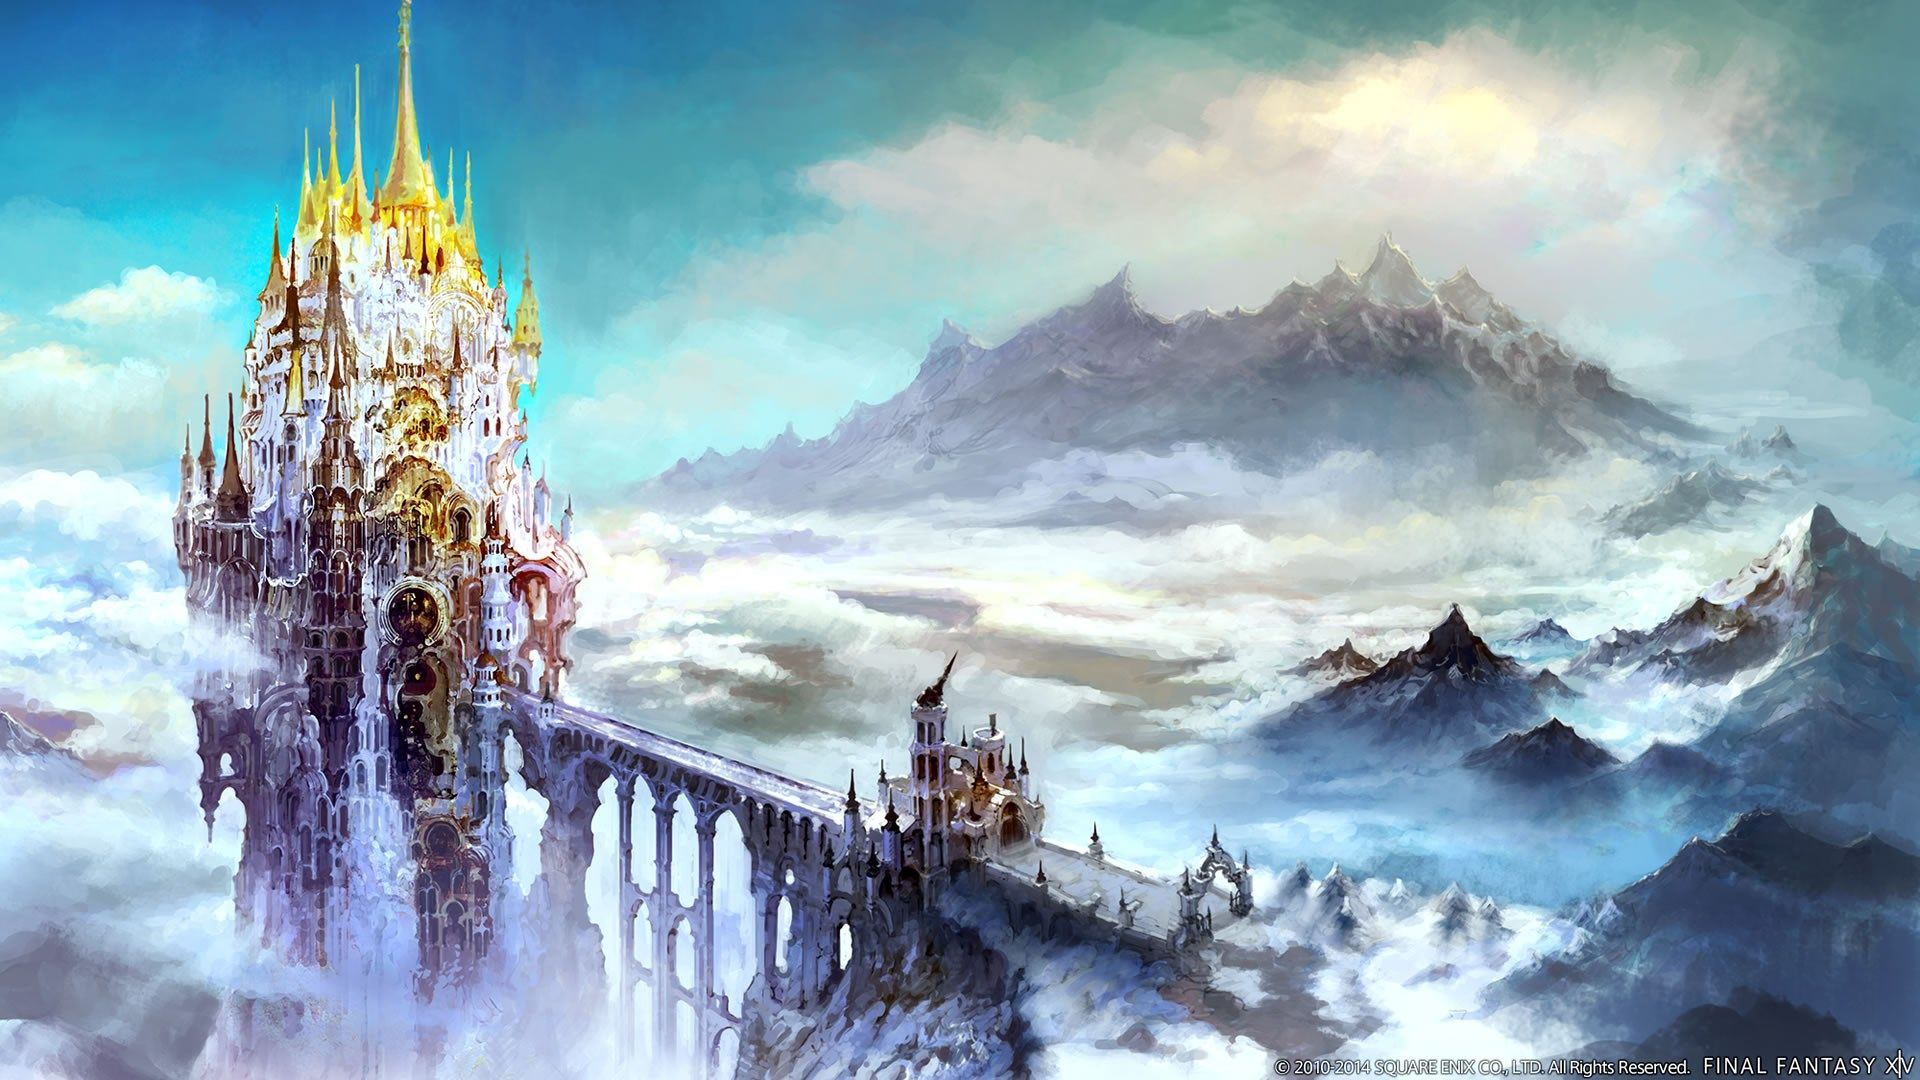 Final Fantasy Xiv Backgrounds Posted By Sarah Thompson